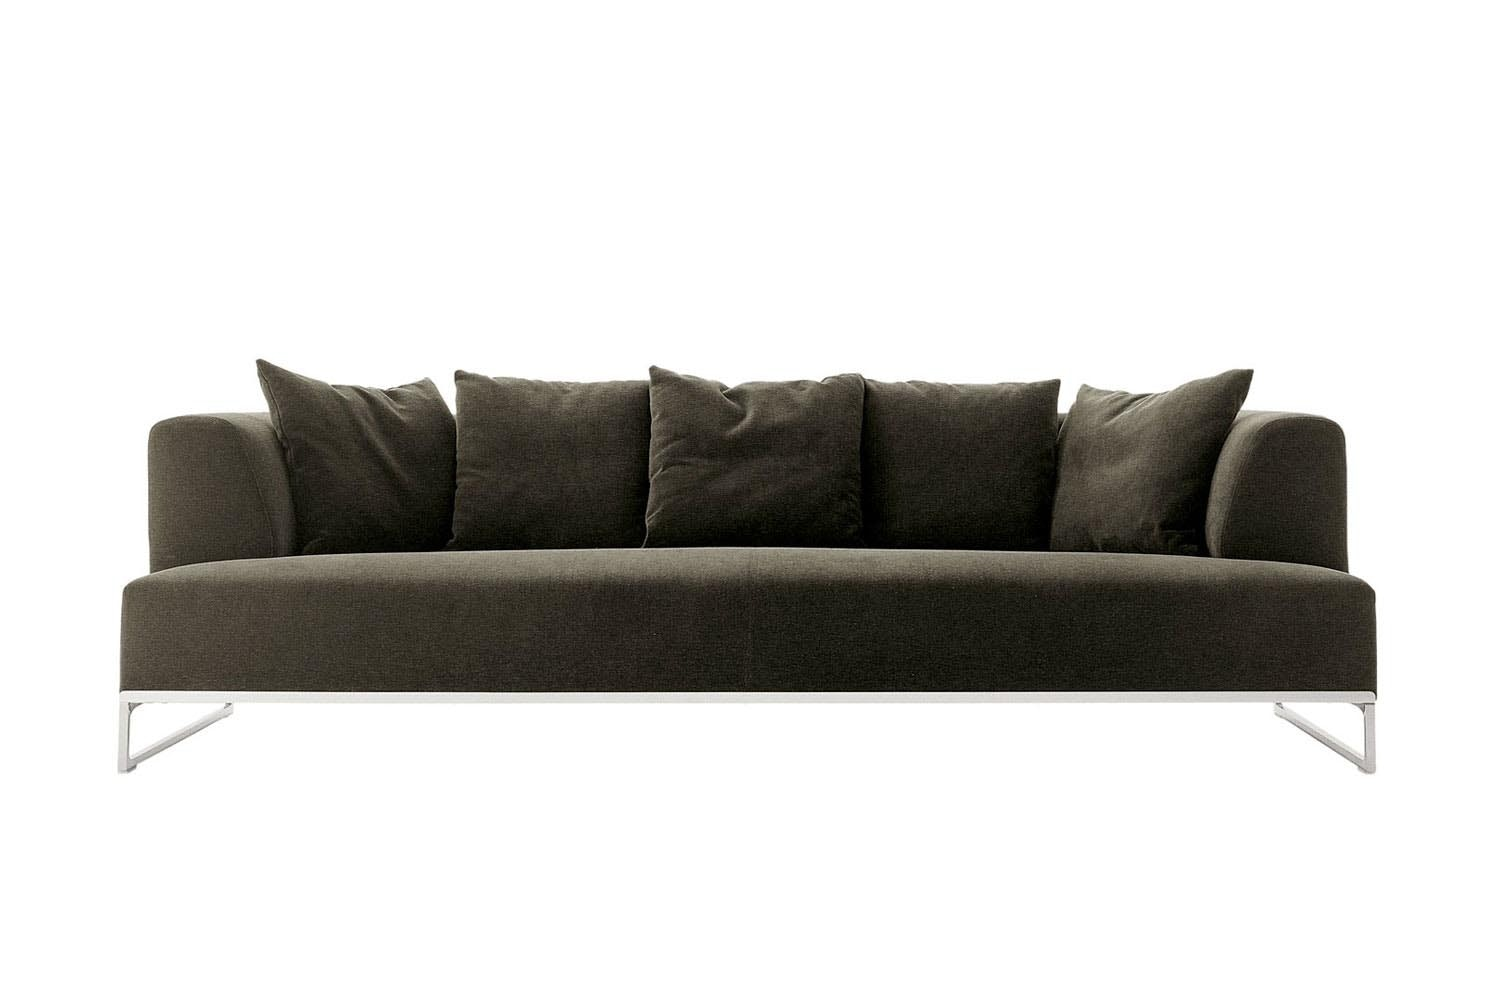 Solo Sofa by Antonio Citterio for B&B Italia